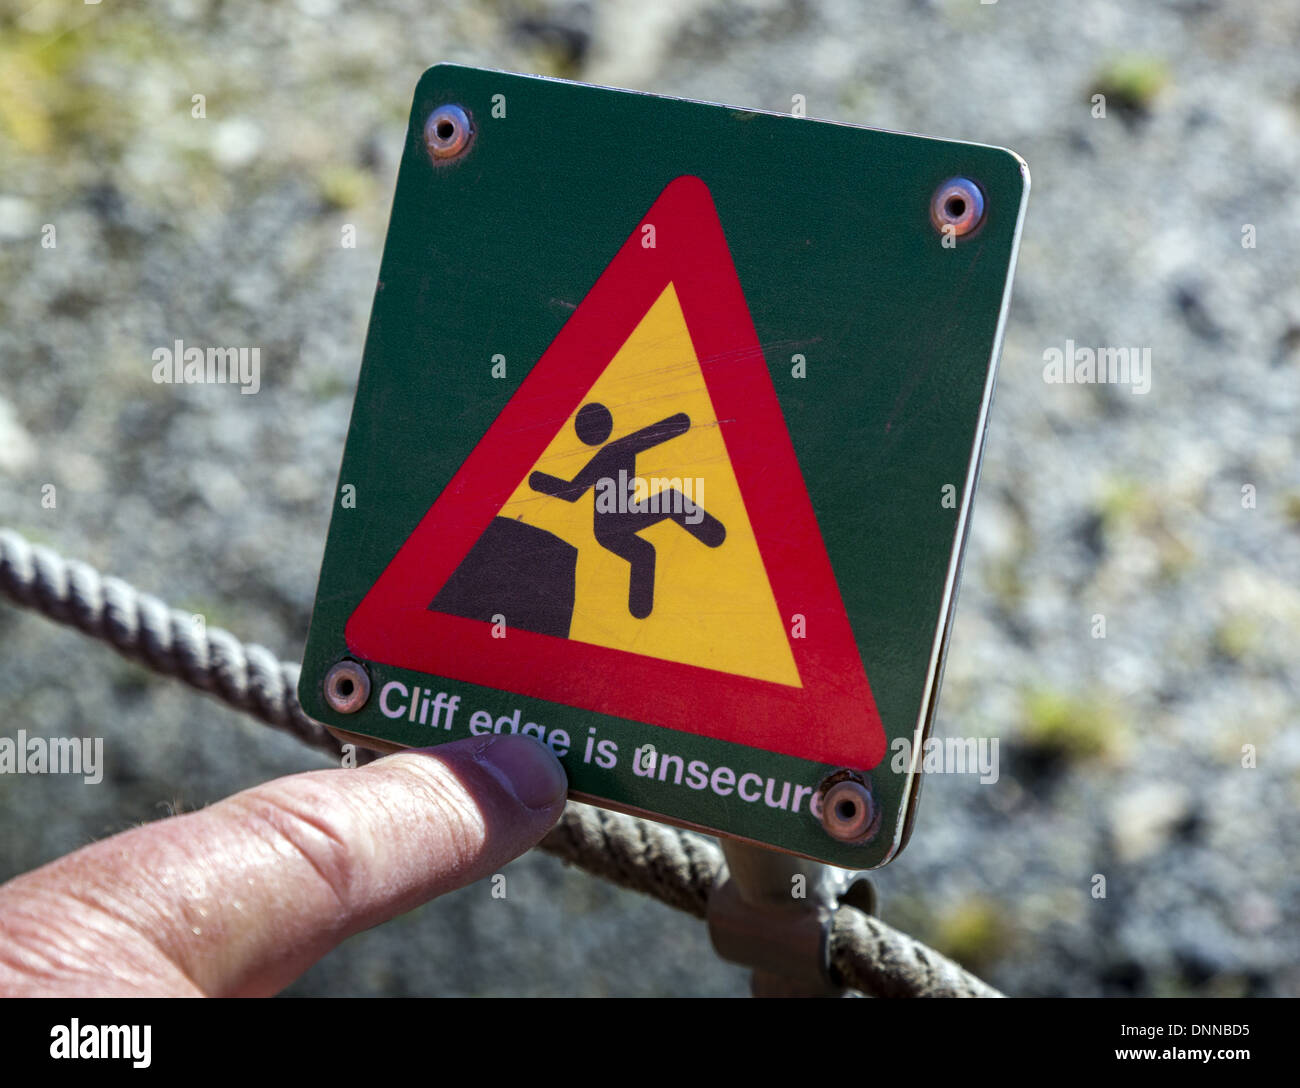 Finger pointing at red and yellow danger sign with diagram of person sliiping or falling indicating the risk of falling Iceland - Stock Image